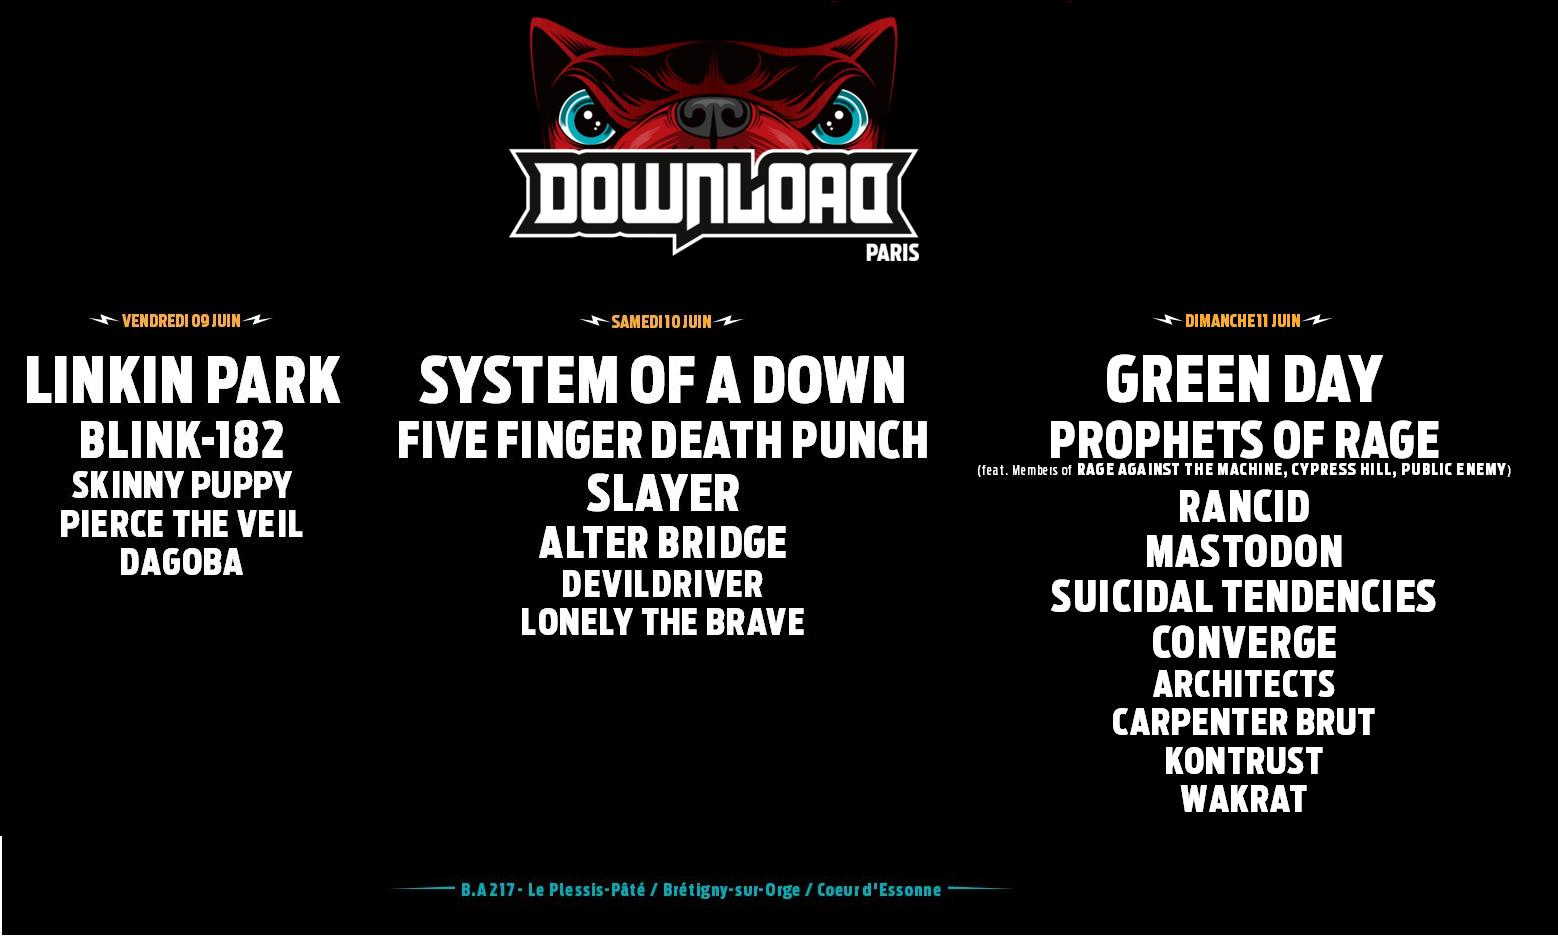 Download Festival France 2017